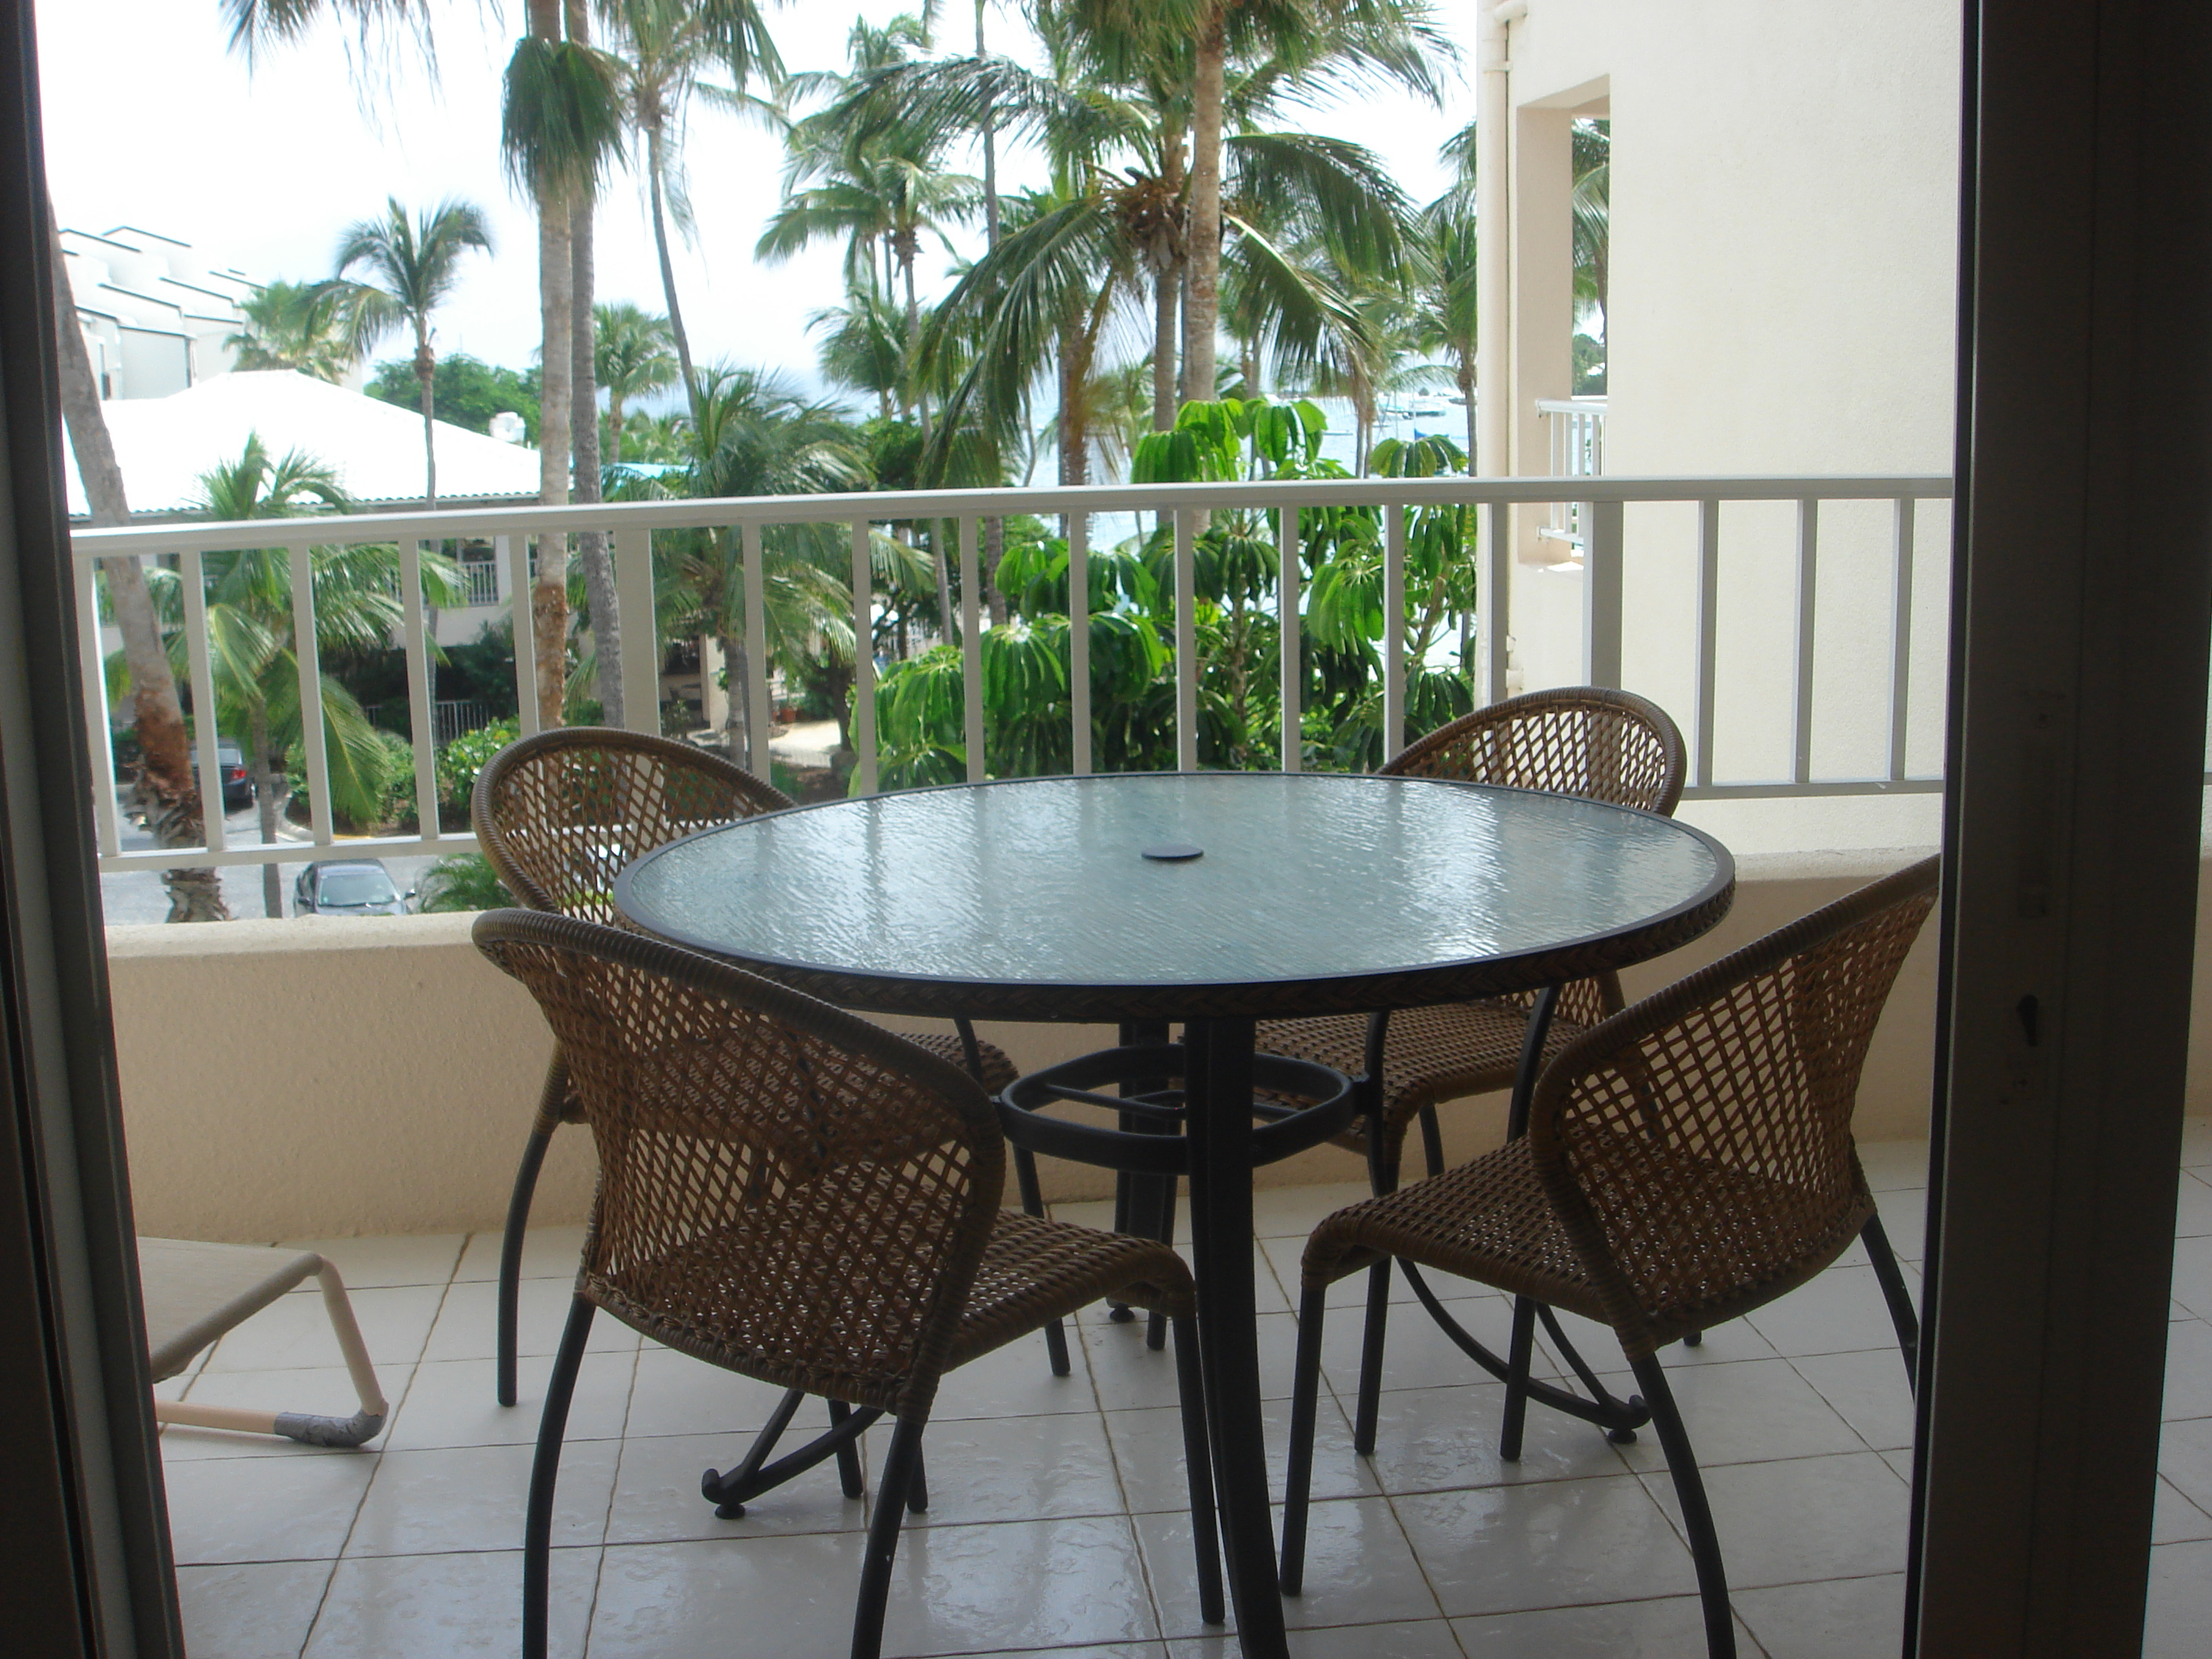 condo outdoor furniture dining table balcony. The Bedroom Has A Comfortable King-size Bed, 32\ Condo Outdoor Furniture Dining Table Balcony